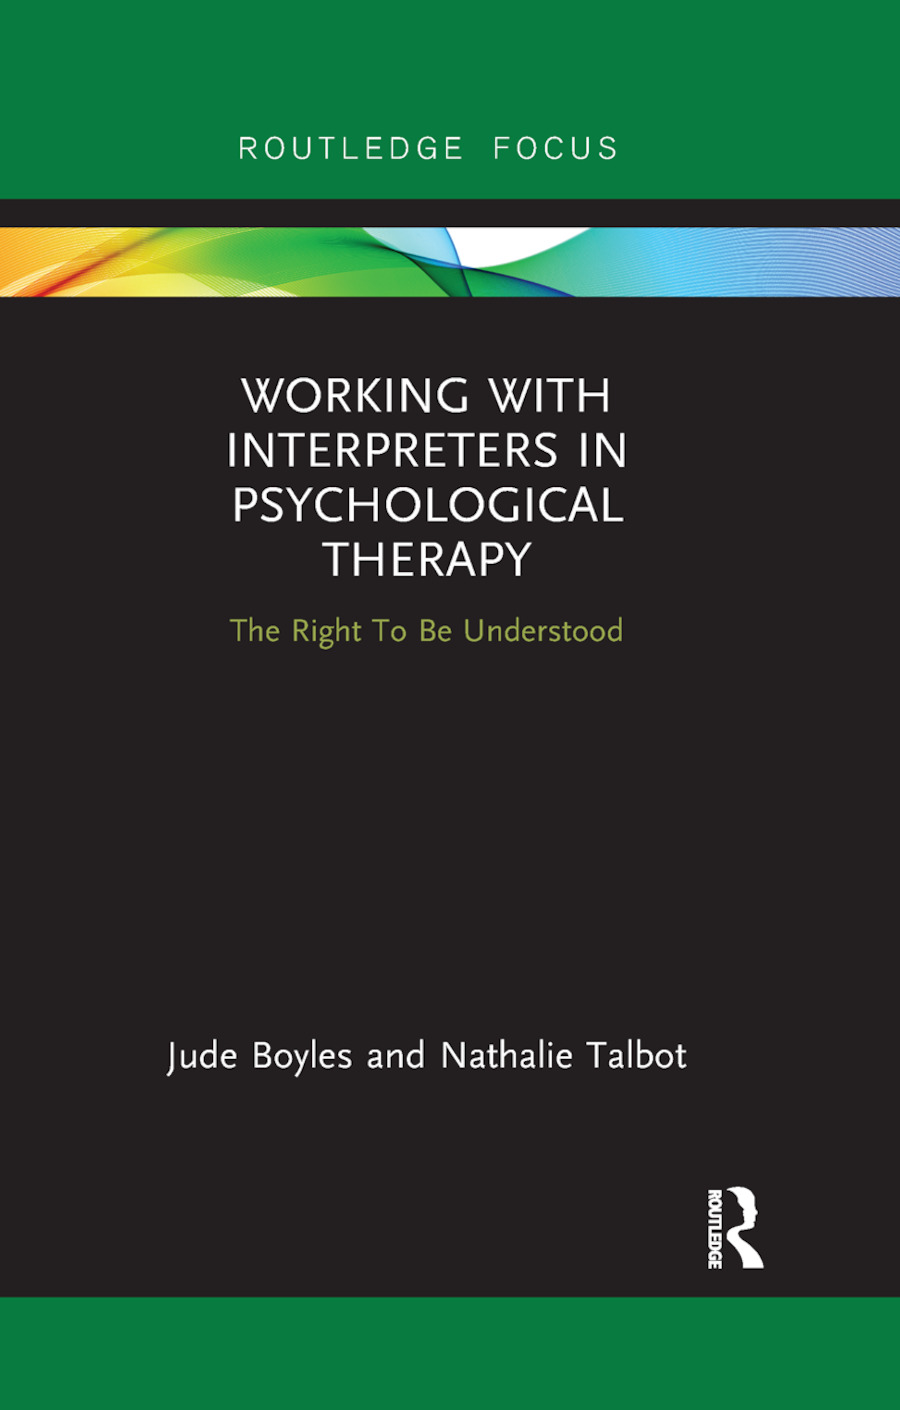 Working with Interpreters in Psychological Therapy: The Right To Be Understood book cover